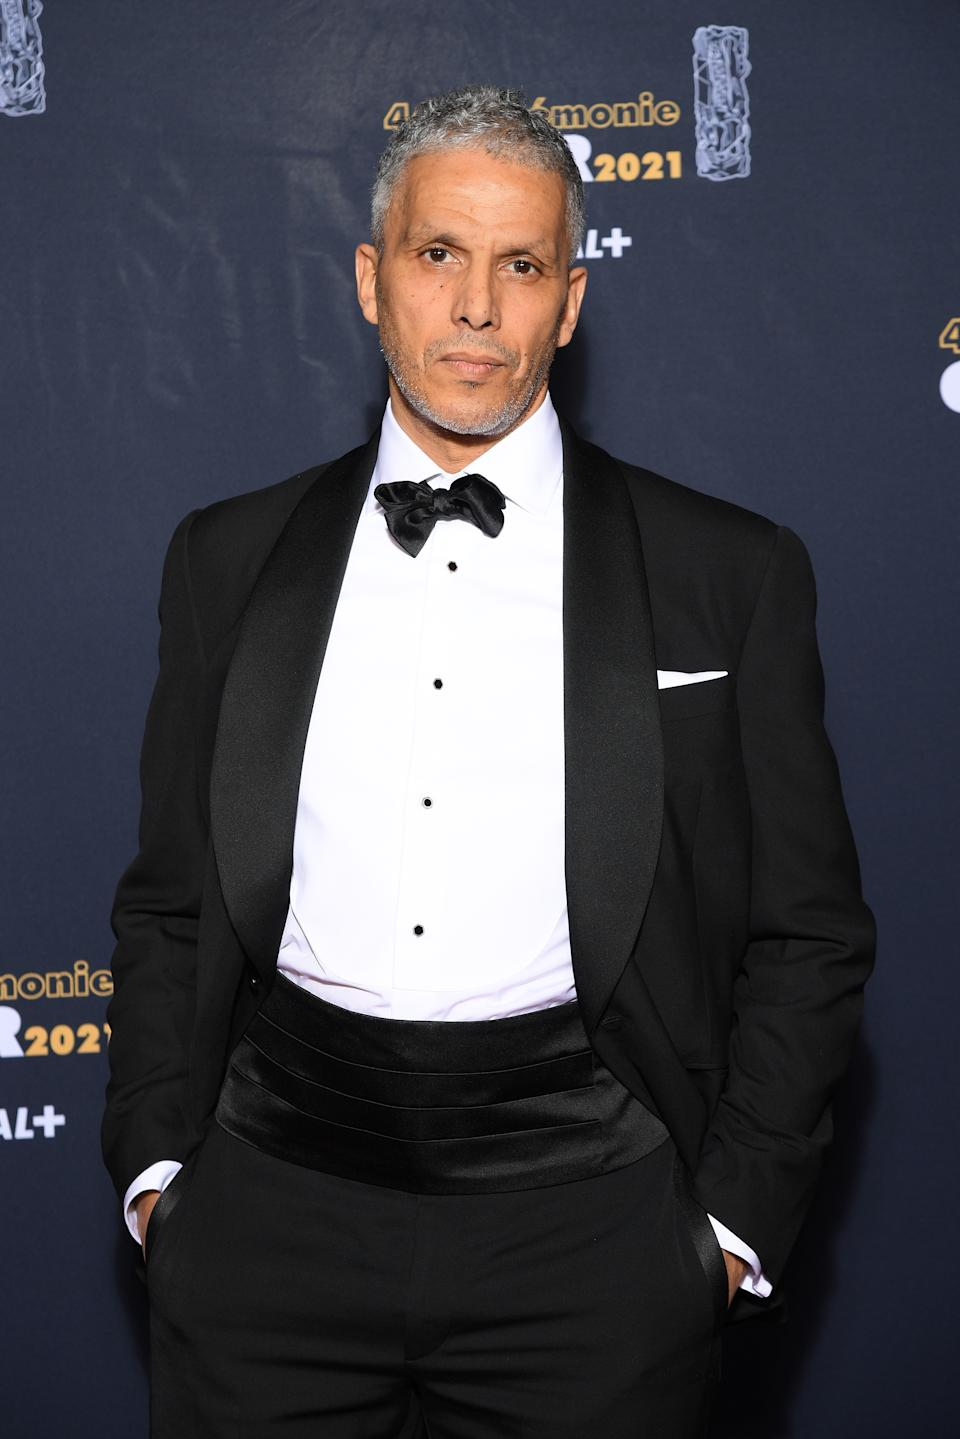 <p>Sami Bouajila était l'incarnation de l'élégance en smoking noir et noeud papillon. (Photo by Pascal Le Segretain/Getty Images)</p>